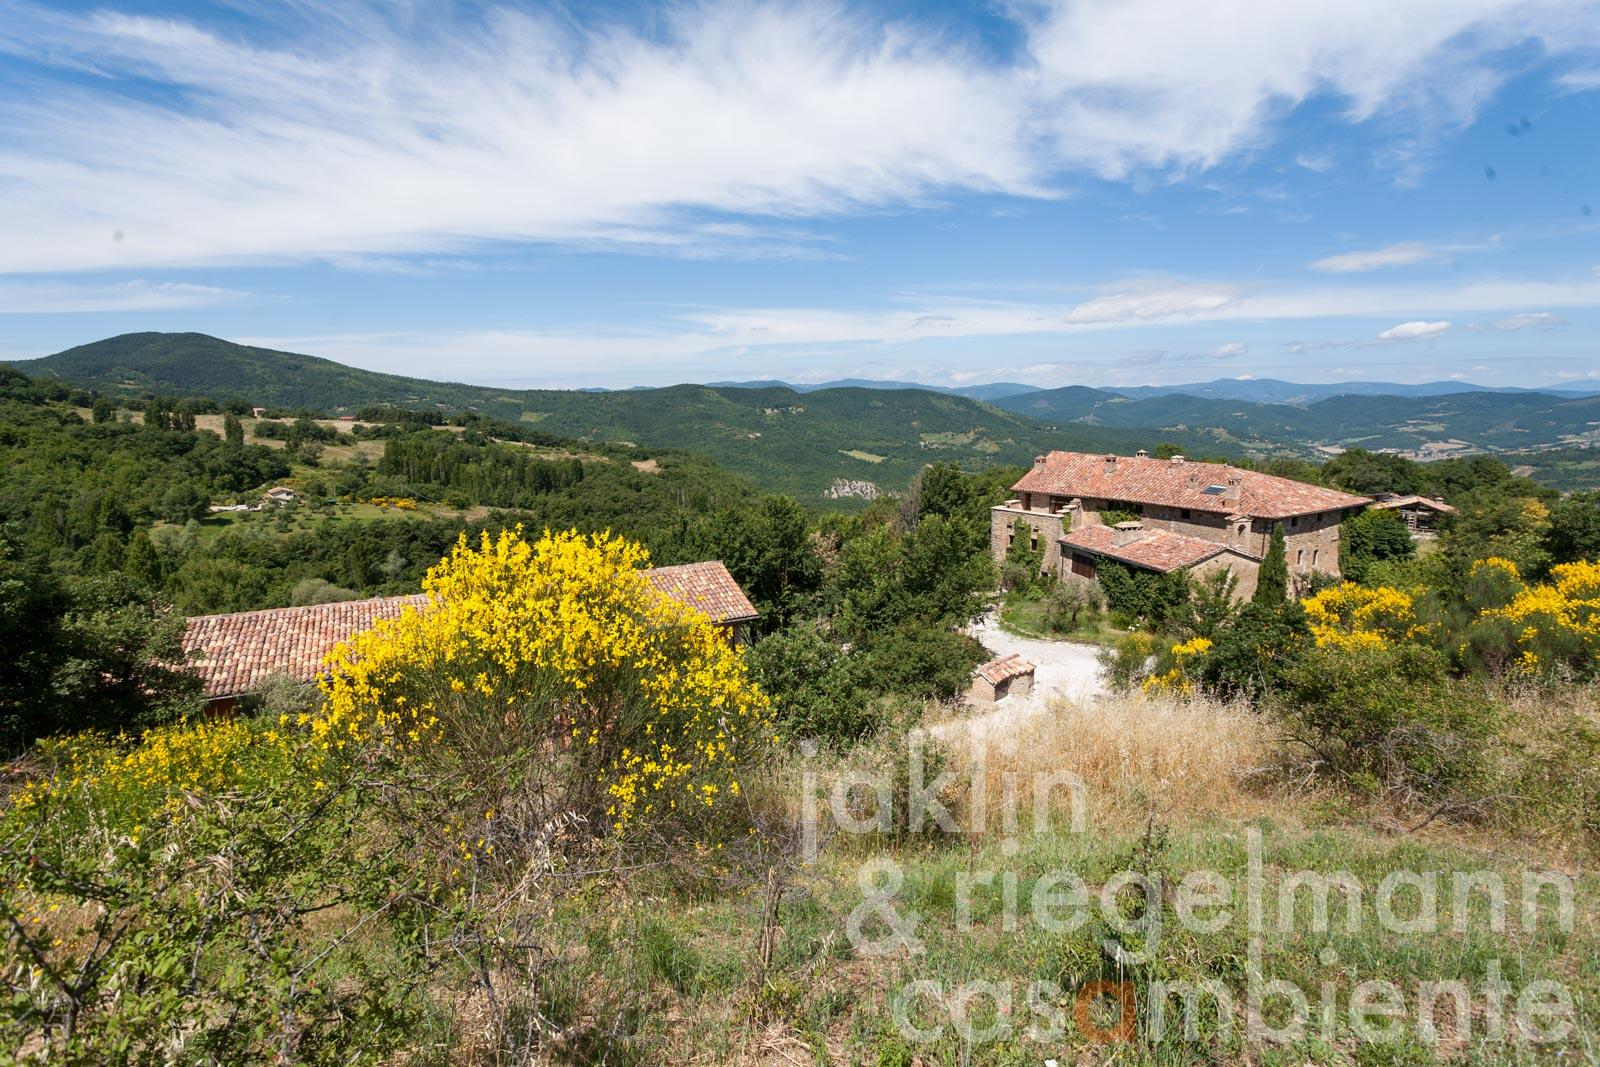 Retreat with 12 bedrooms in the Umbrian mountains